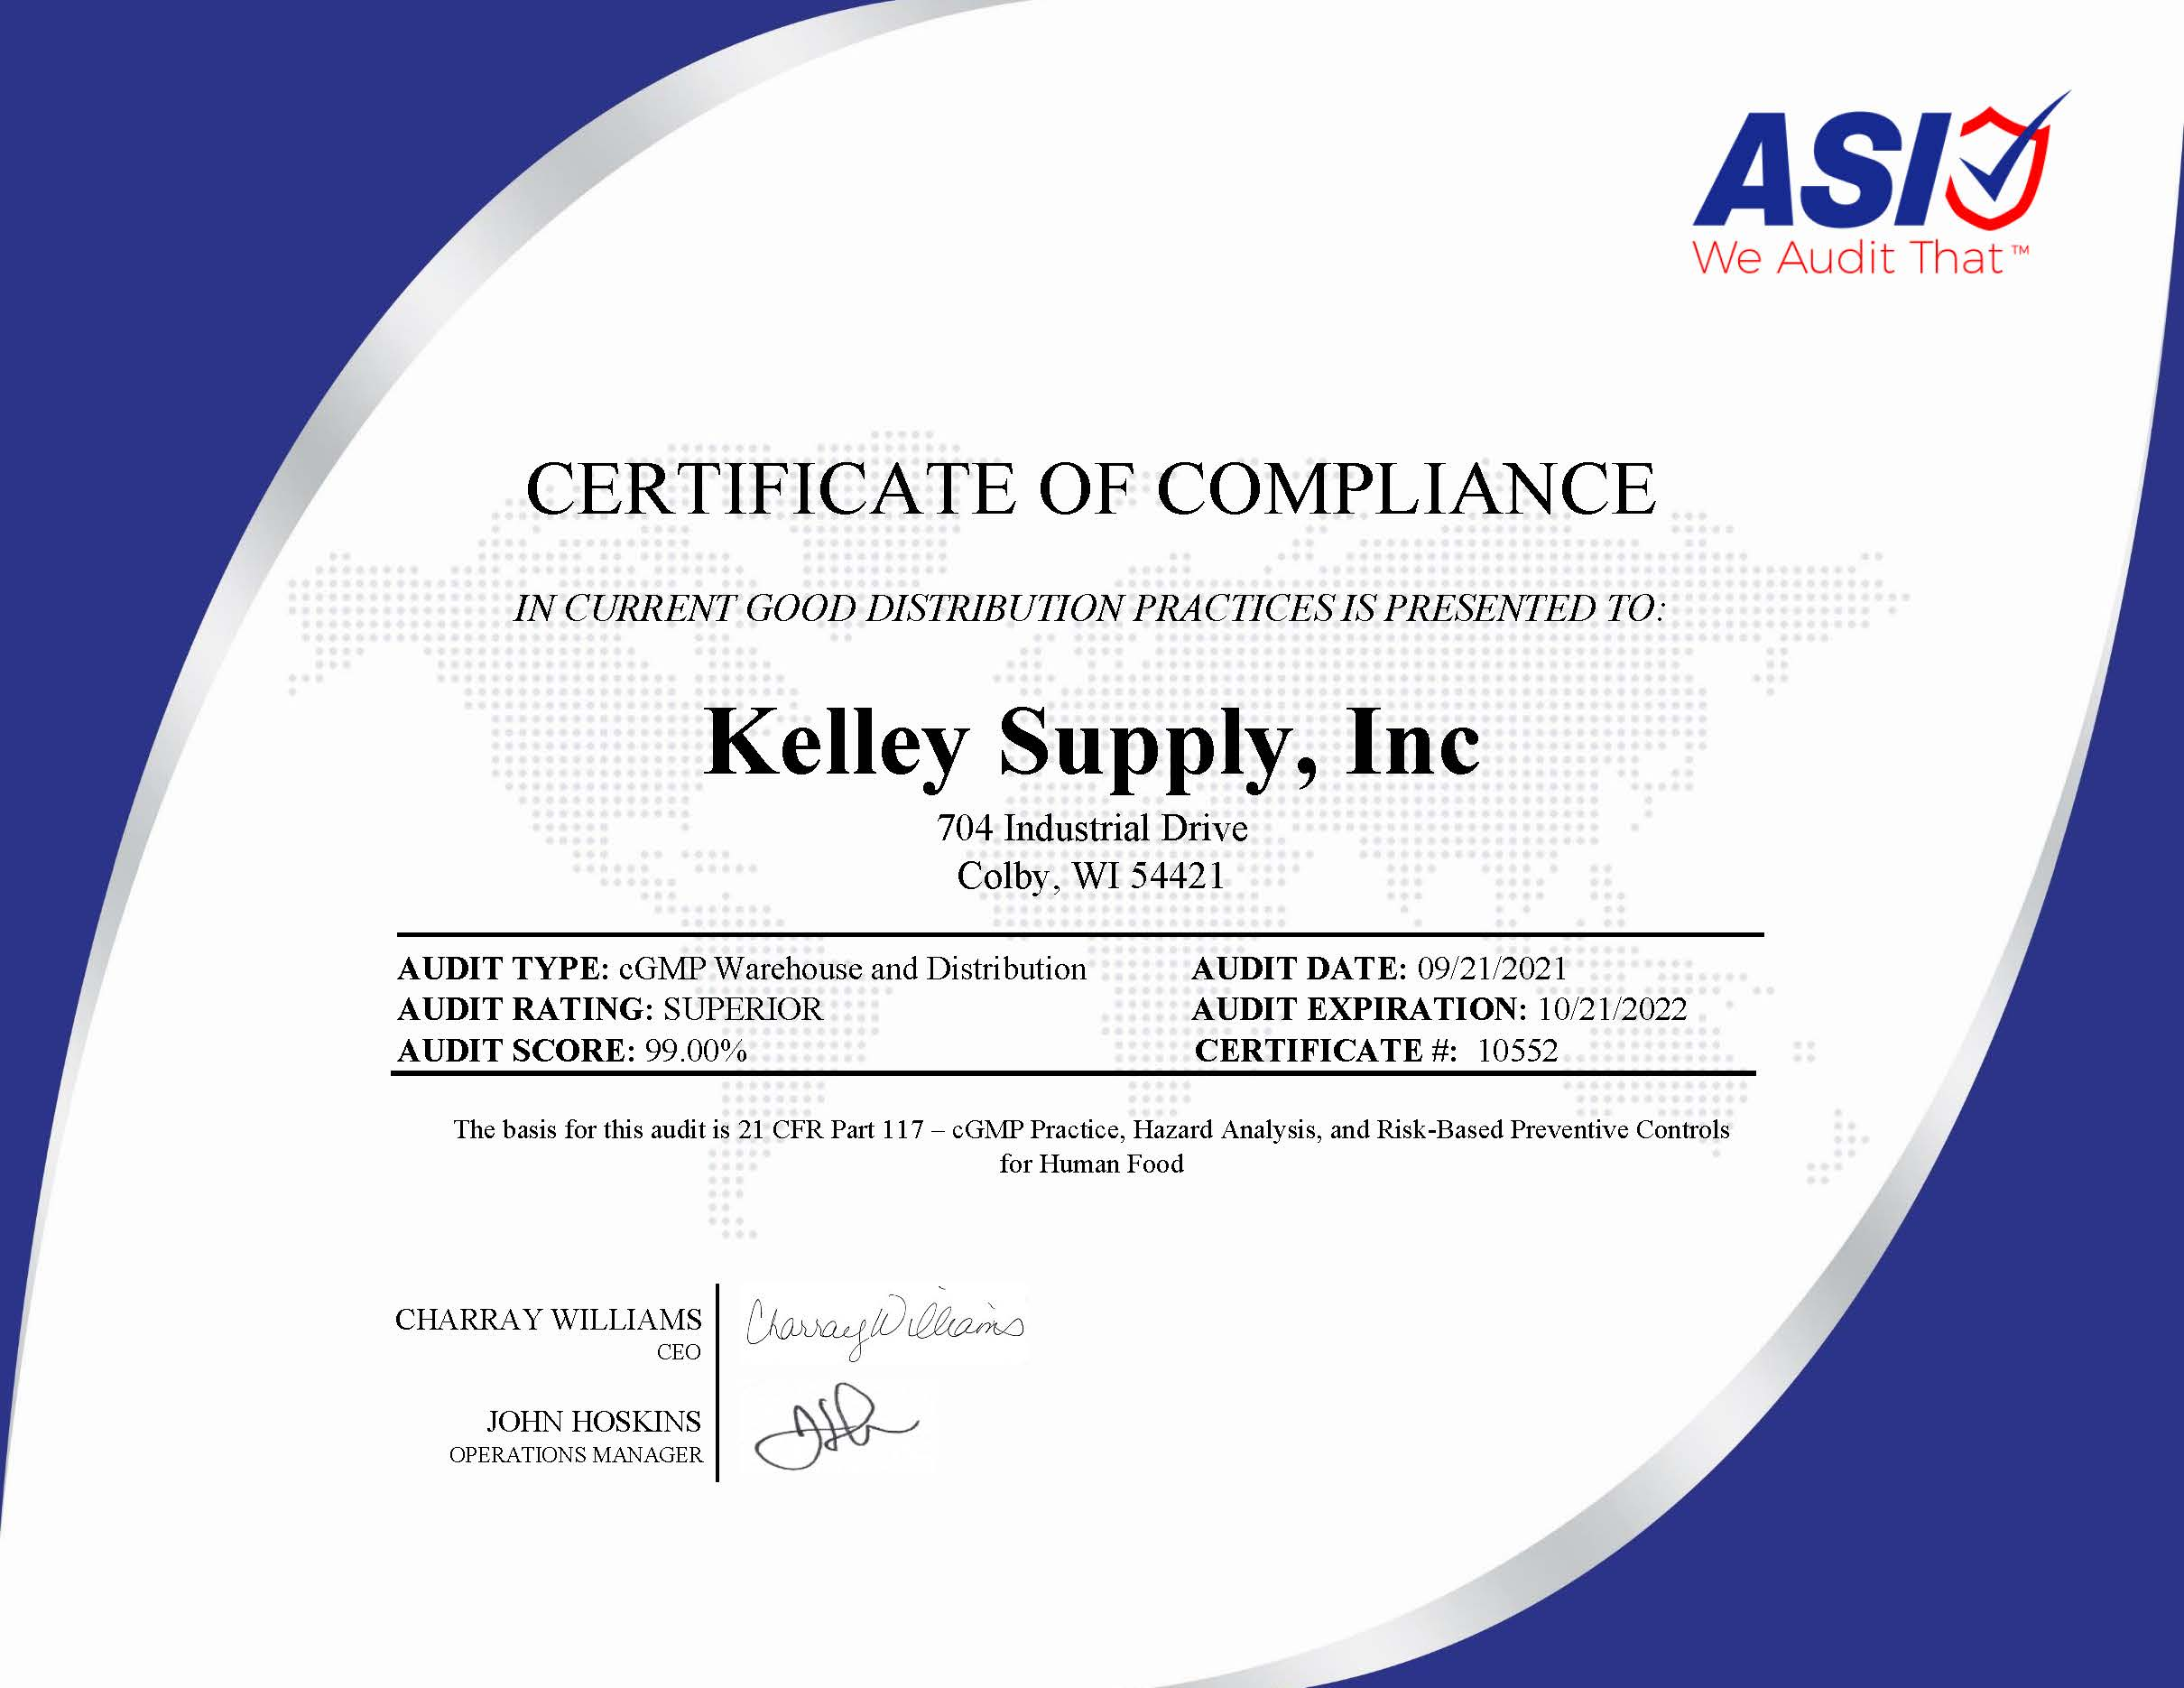 Kelley Supply, Inc. Distribution Center Audit Certificate